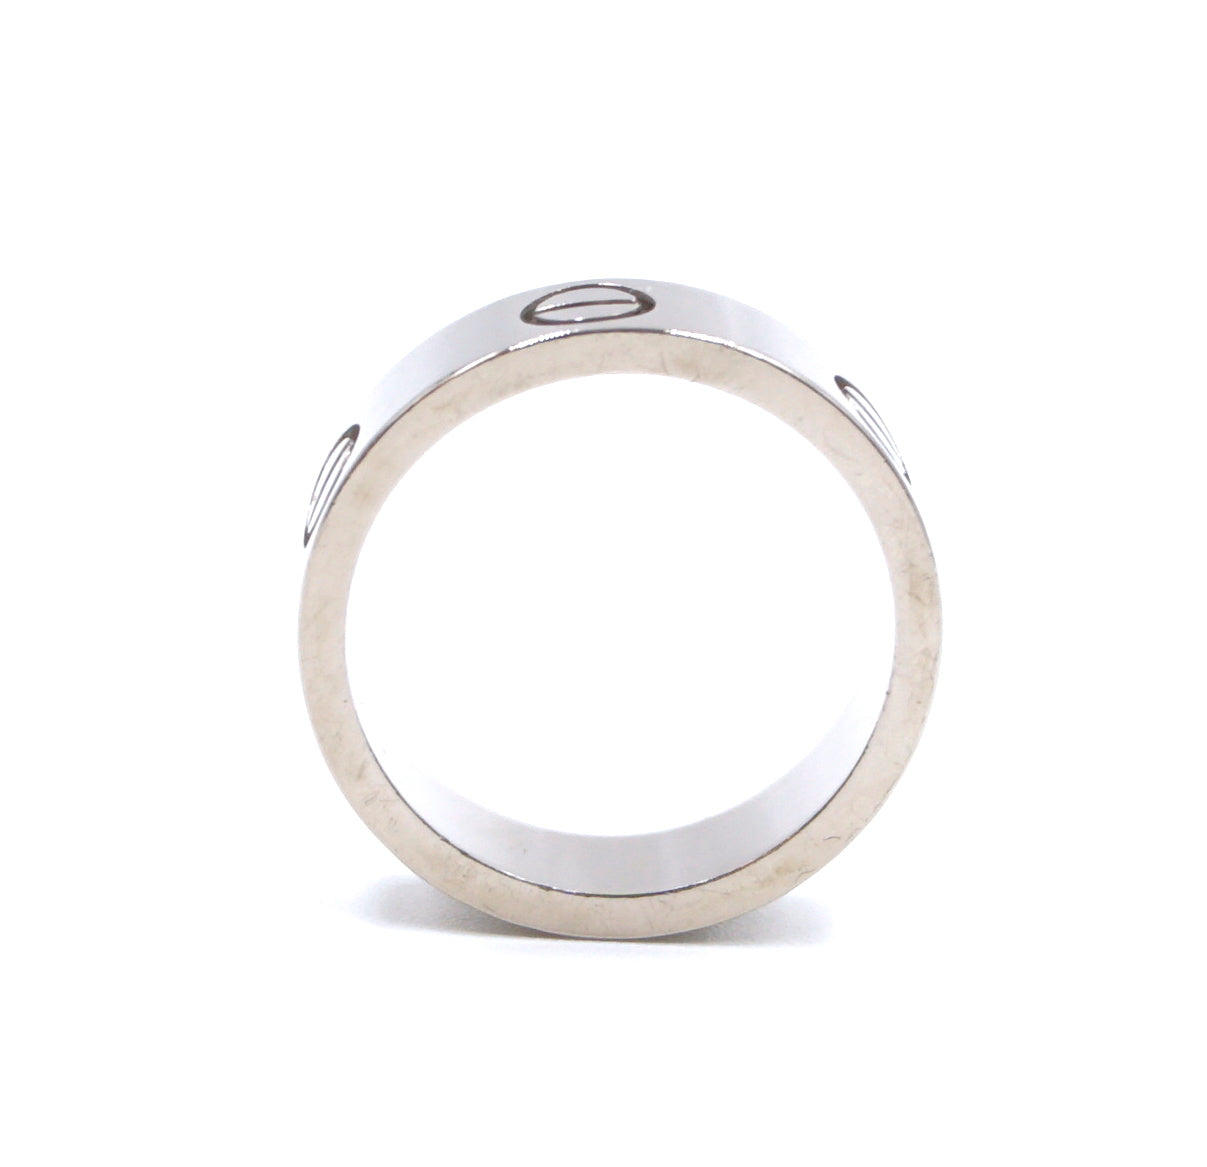 Cartier White Gold 18k 750 Size 51 Love Ring